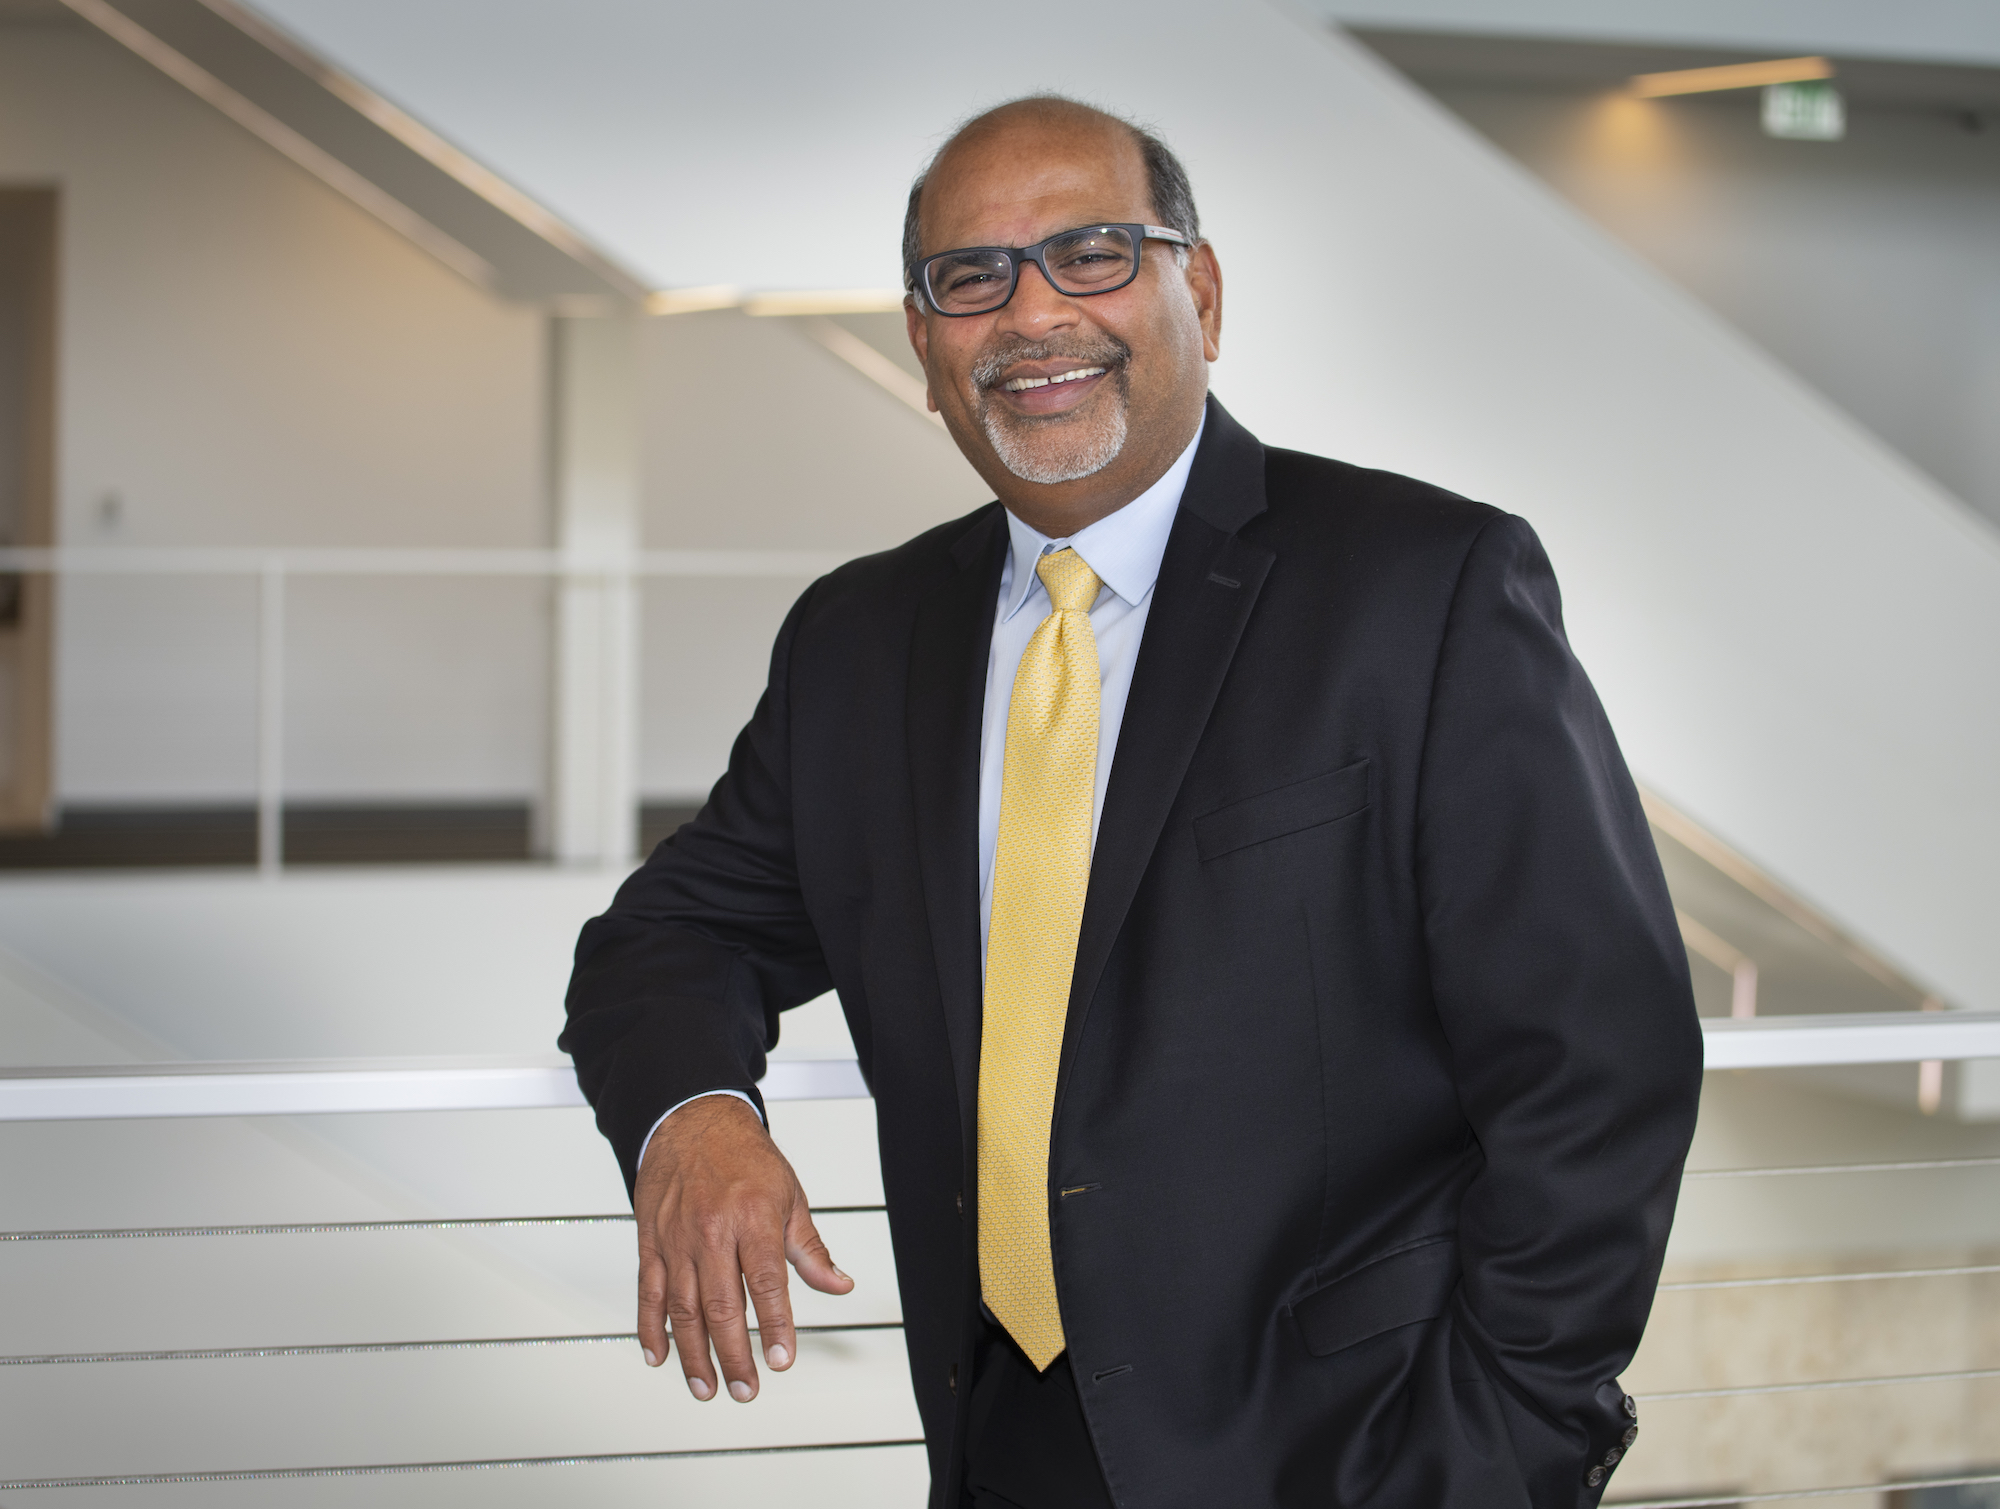 Dean Sri Sundaram is the first person from outside of the business community to be named chair of the Board of Governors for the St. Petersburg Chamber of Commerce.